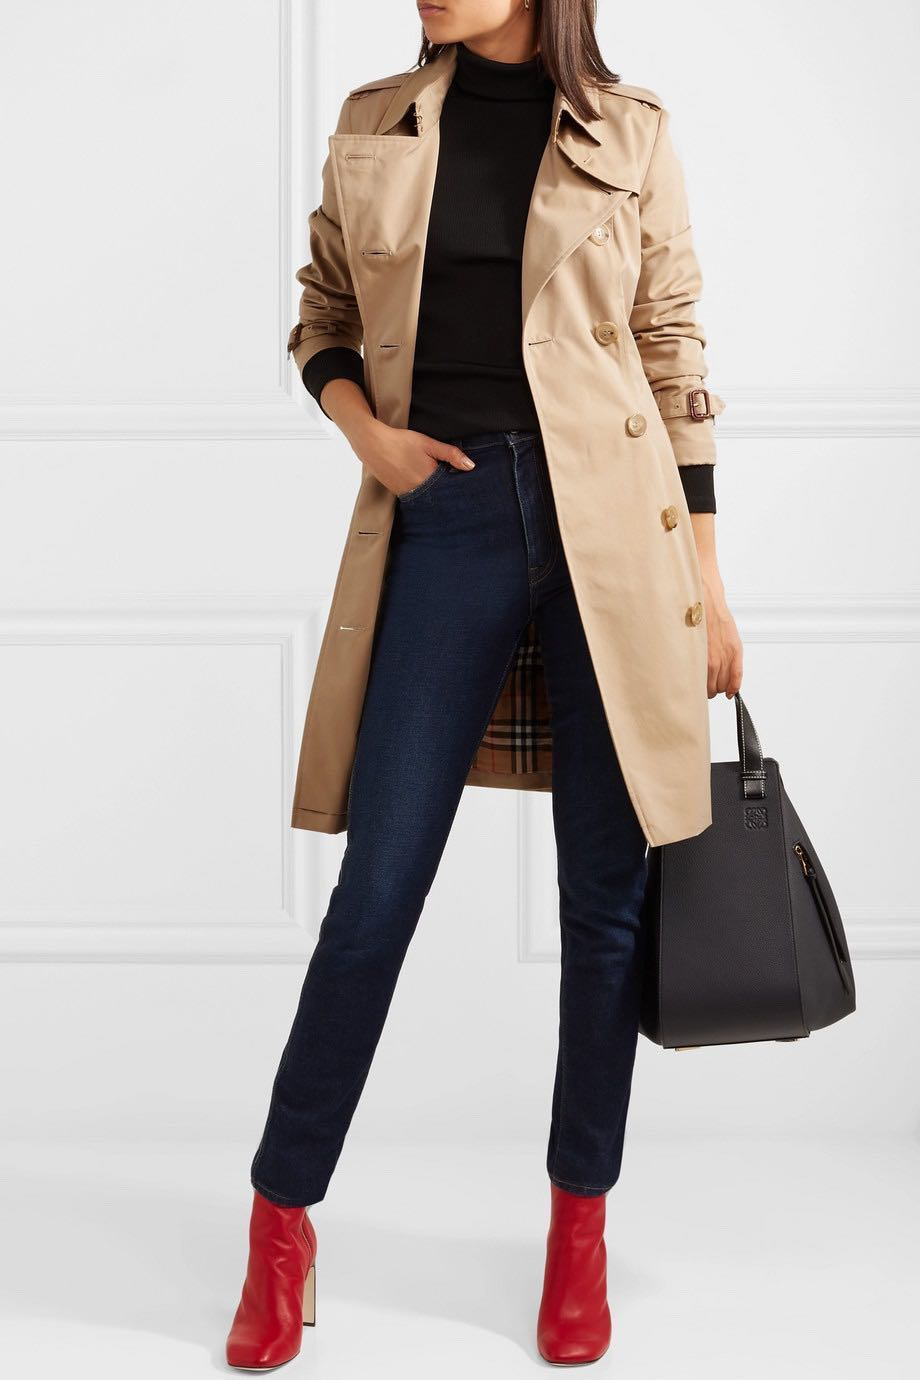 f6549d6368 BNWT Authentic BURBERRY Chelsea Honey Classic Trench, Women's ...